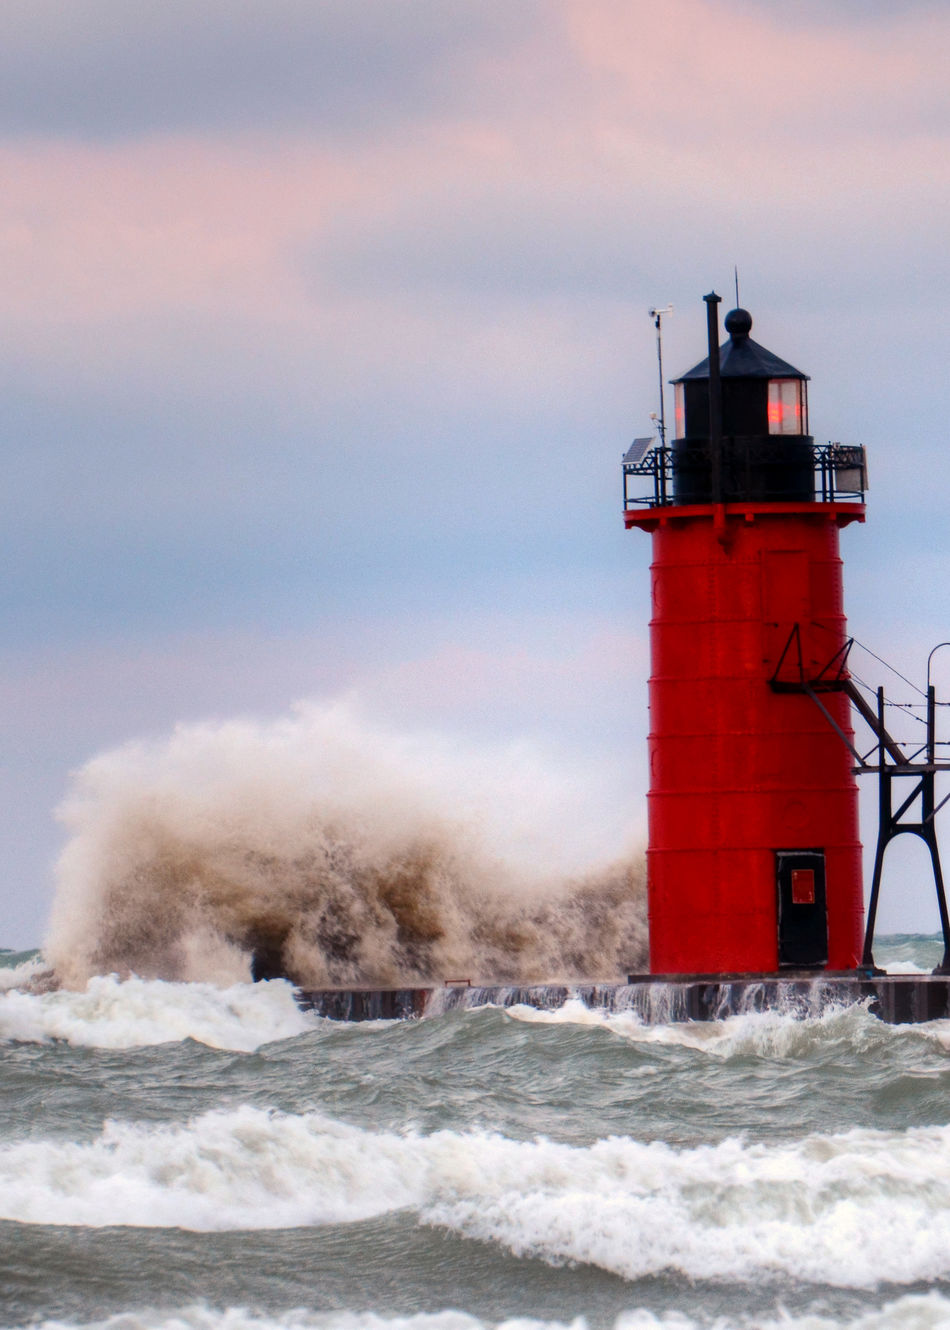 Architecture Danger Direction Guidance Lighthouse Motion Nature Orange Color Outdoors Power In Nature Protection Red Safety Scenics Sea Security Sky Splashing Stormy Water Stormy Waves Tower Water Waterfront Wave